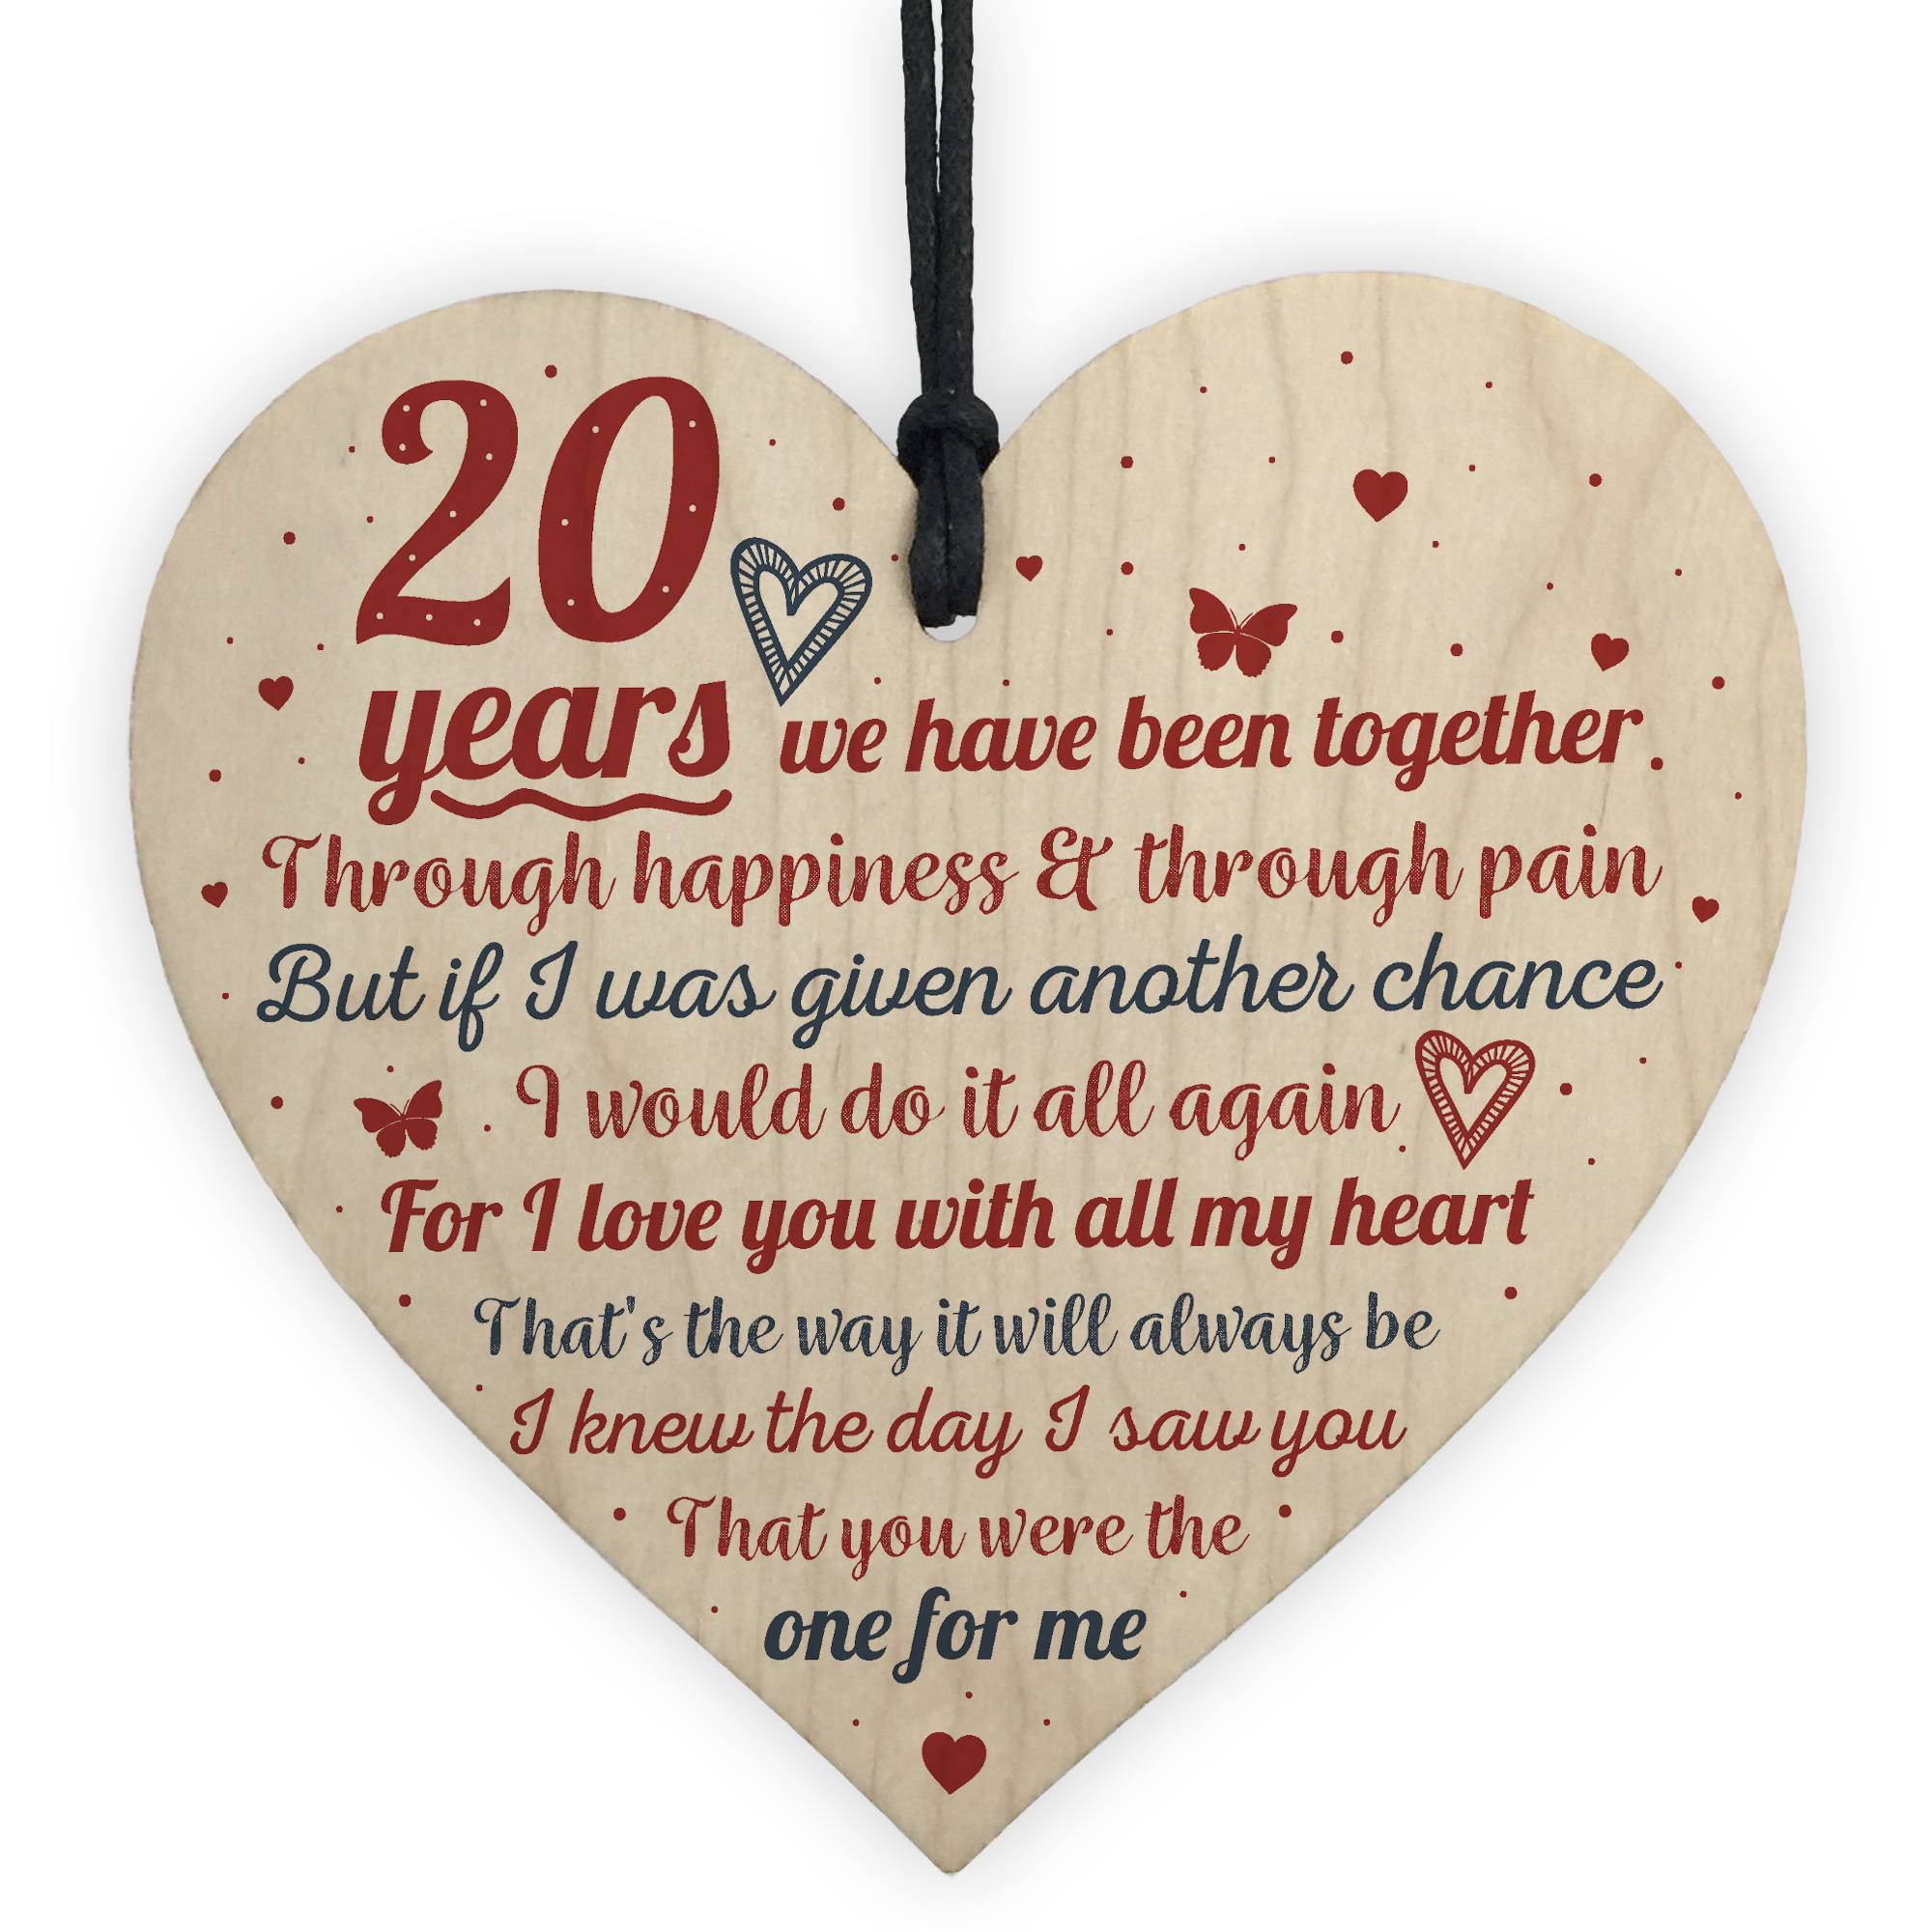 Details about Anniversary 8th Wedding Anniversary Engagement Wood Heart  Plaque Gift Keepsake